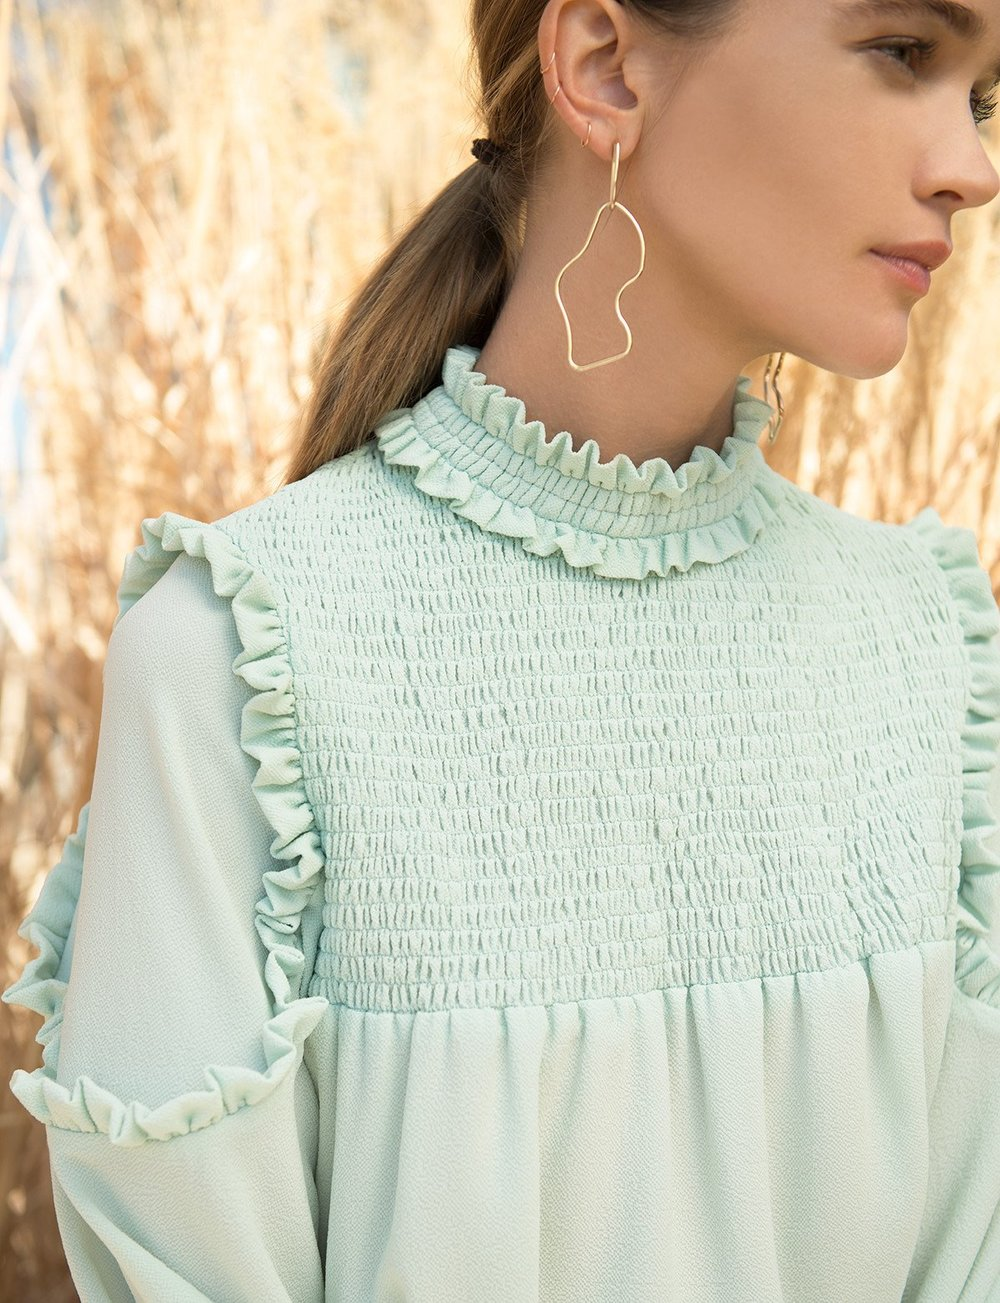 - MINT RUFFLED MOCK NECK BLOUSE / Pixie Market sale price $49 (*take extra 40% off w/code